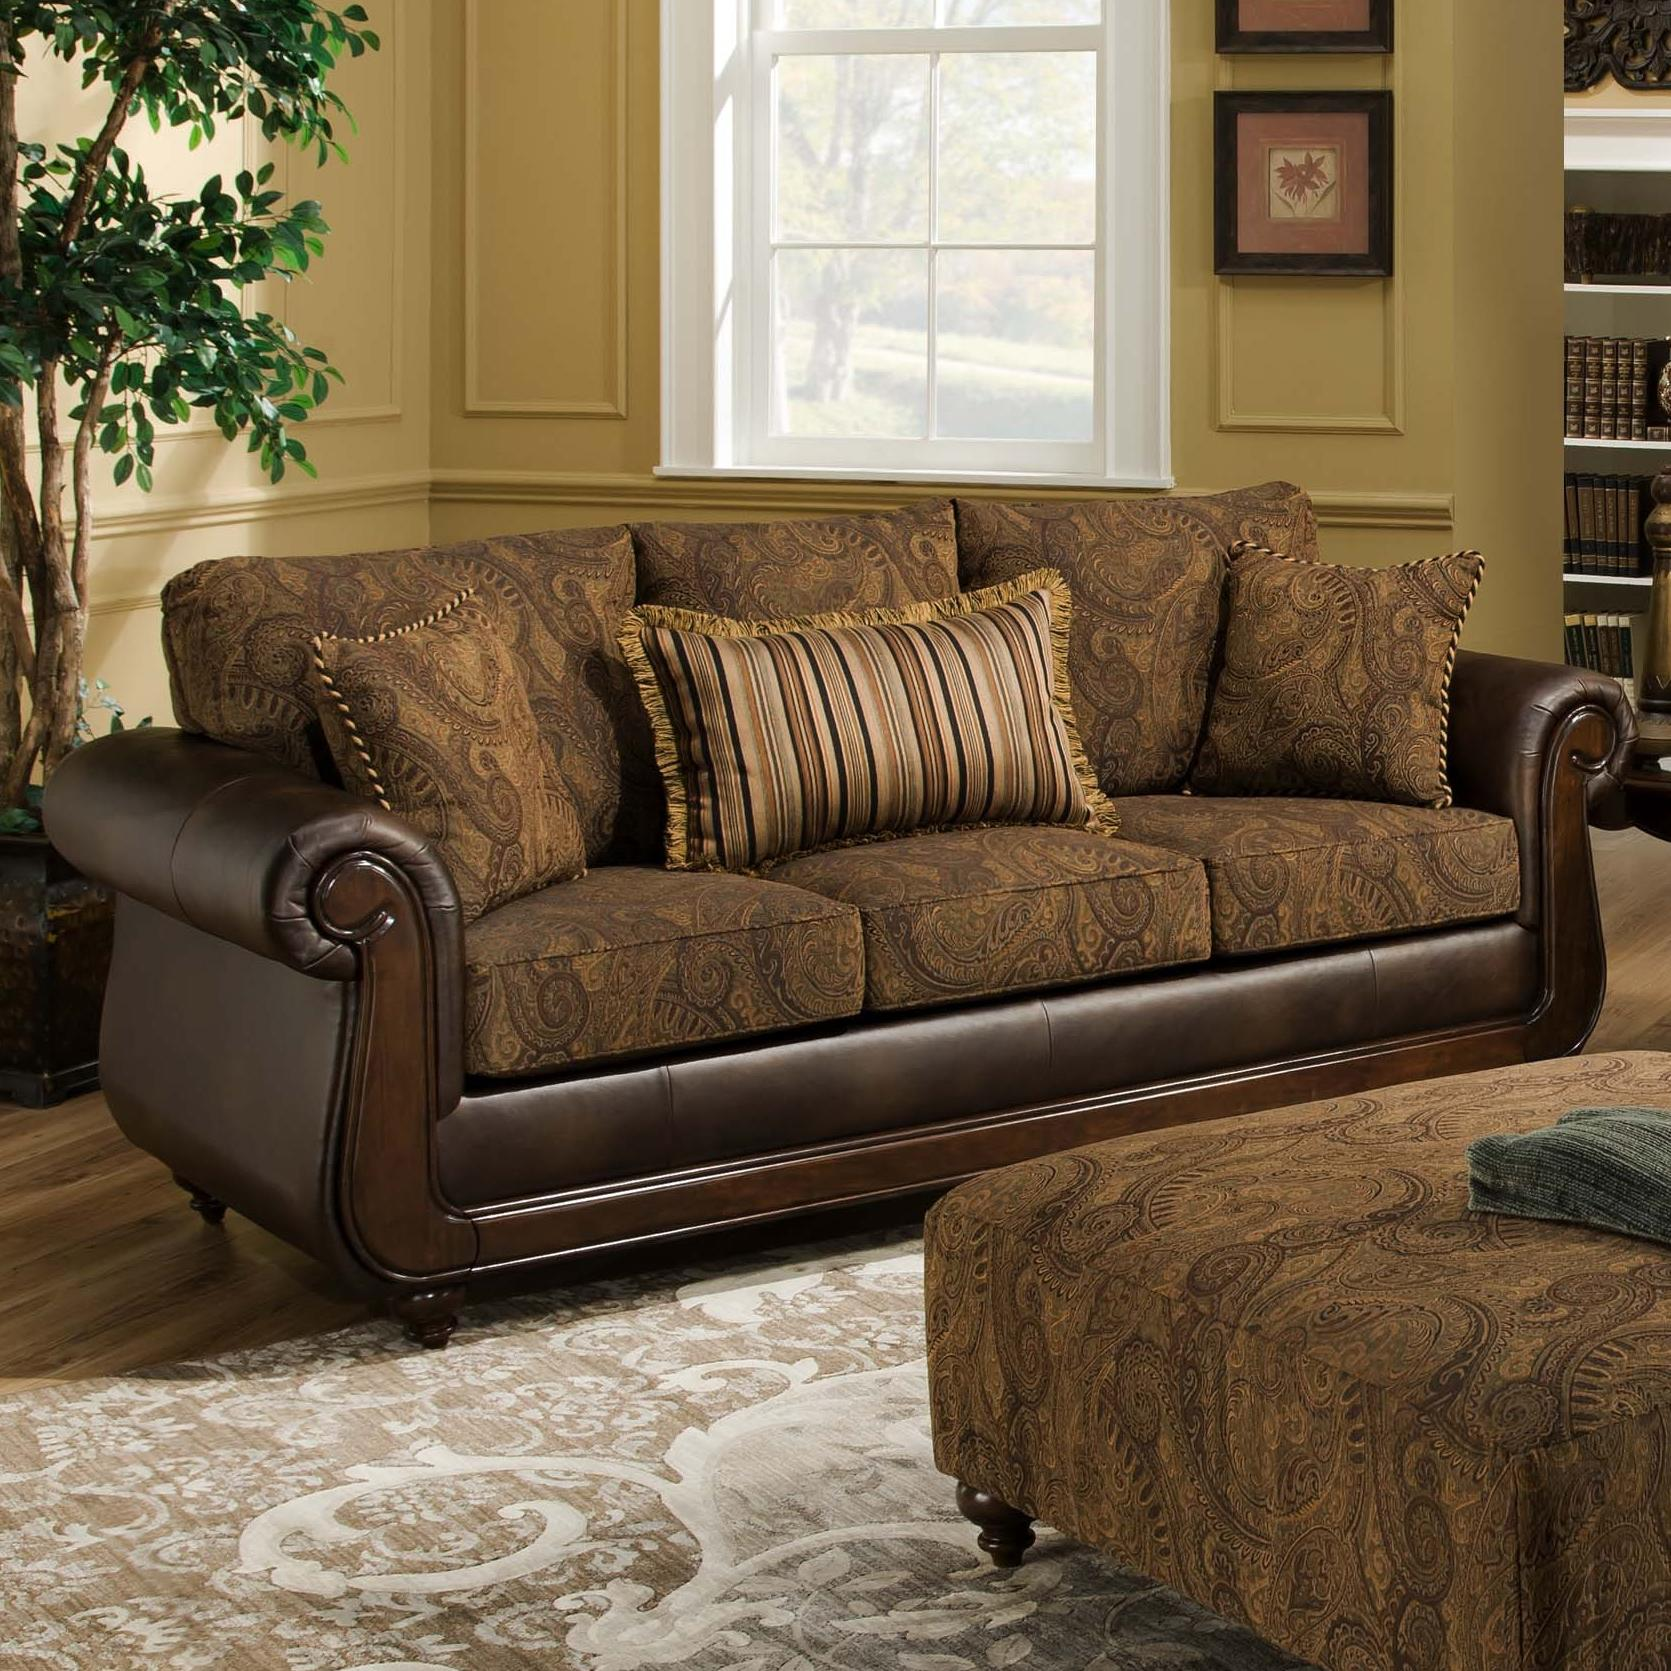 American Furniture 5850 Sofa With Exposed Wood In Classic Style Miskelly Furniture Sofa